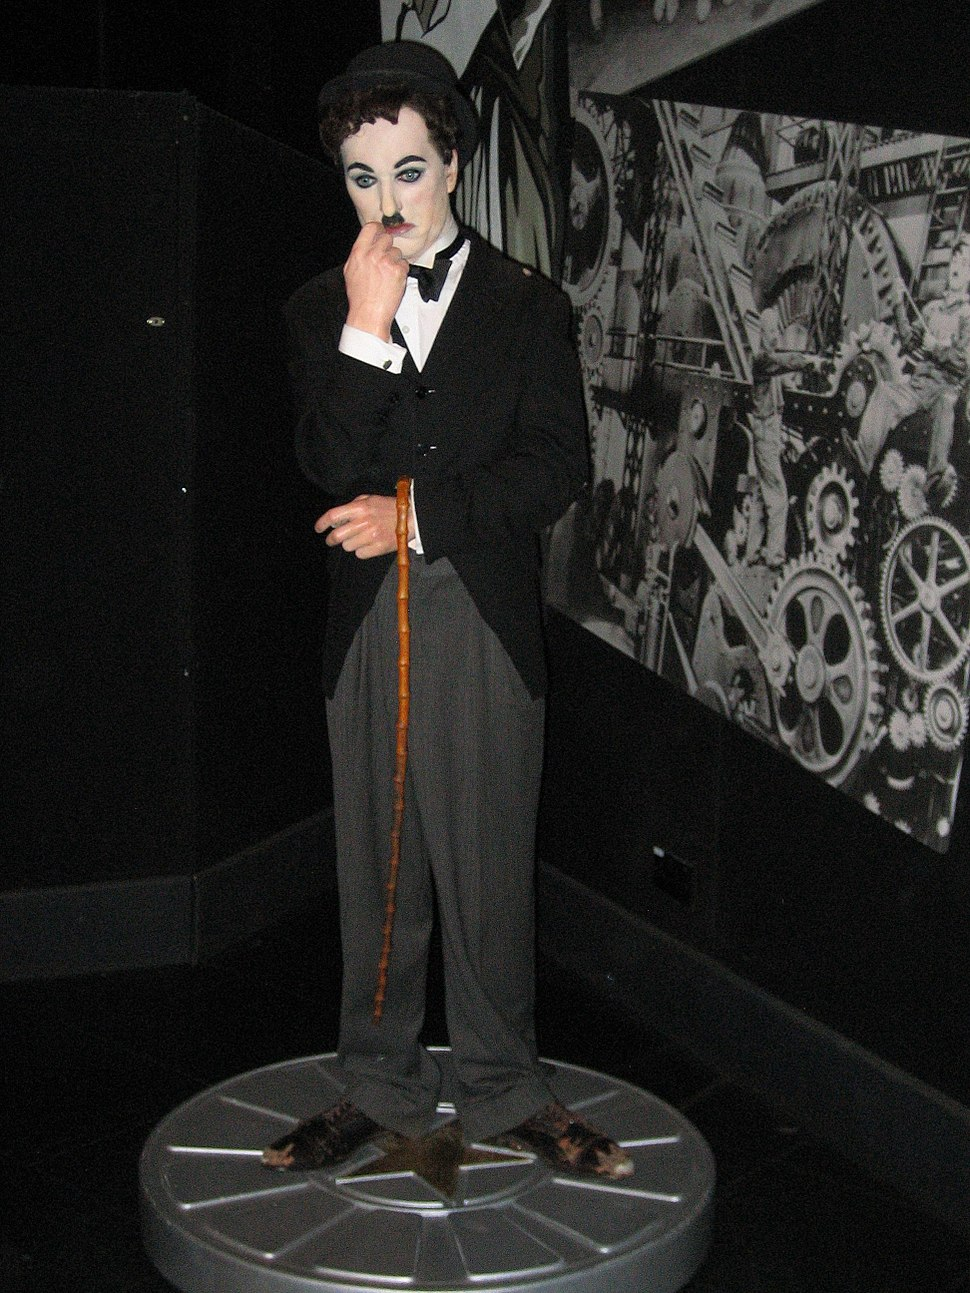 Charlie Chaplin in Madame Tussauds London